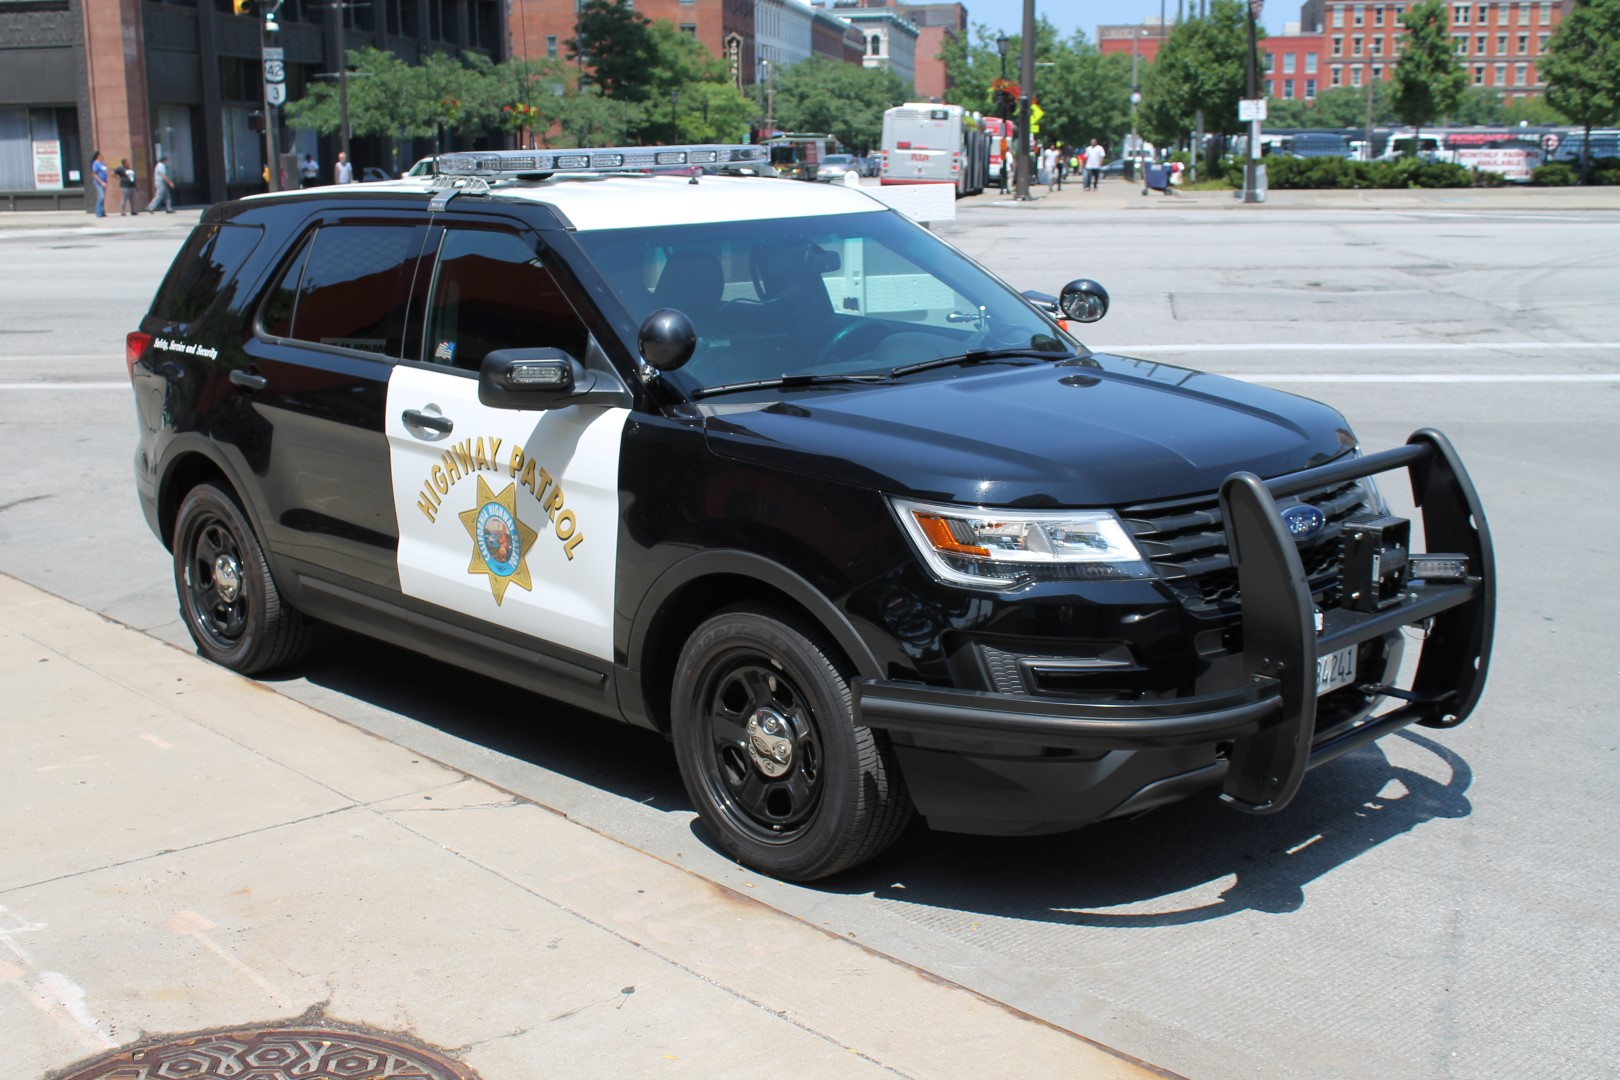 File:California Highway Patrol Ford Interceptor Utility